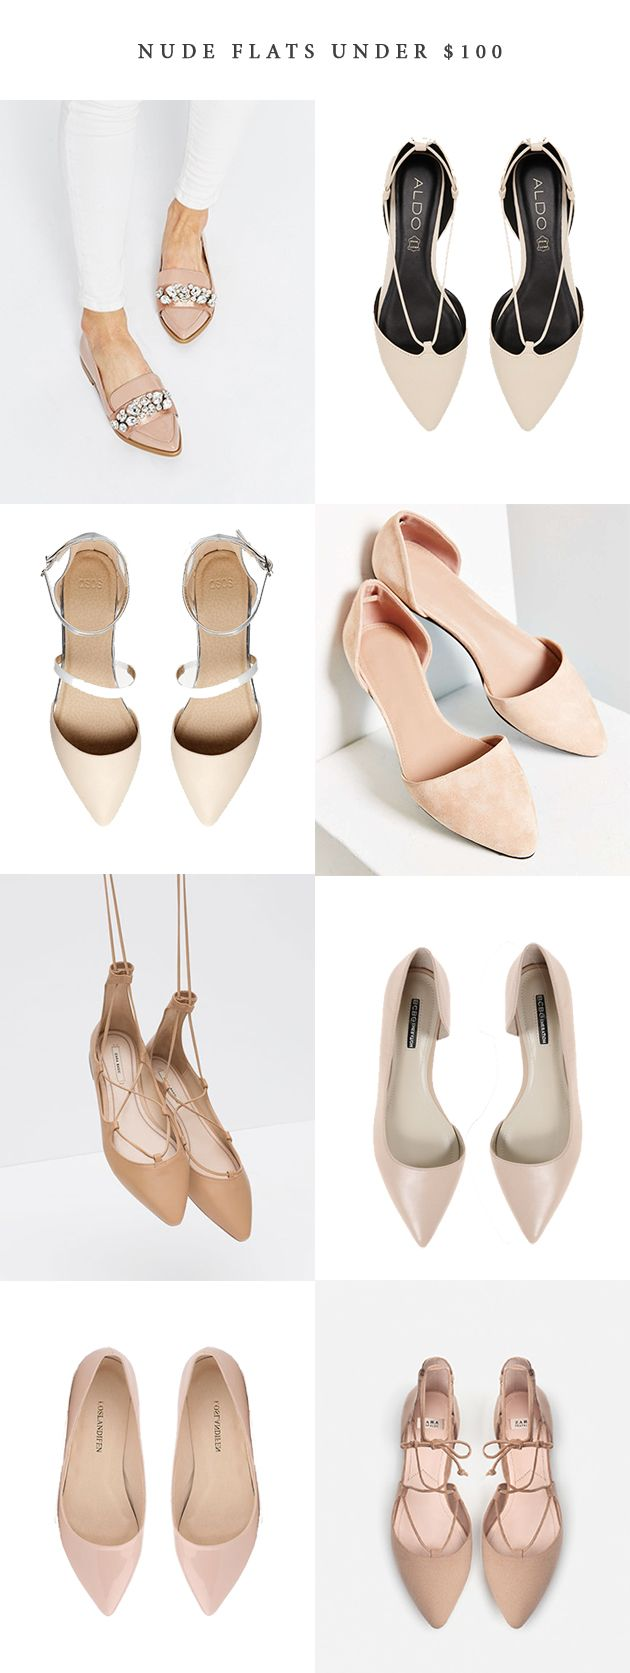 Nude Flats under $100 | In Honor Of Design